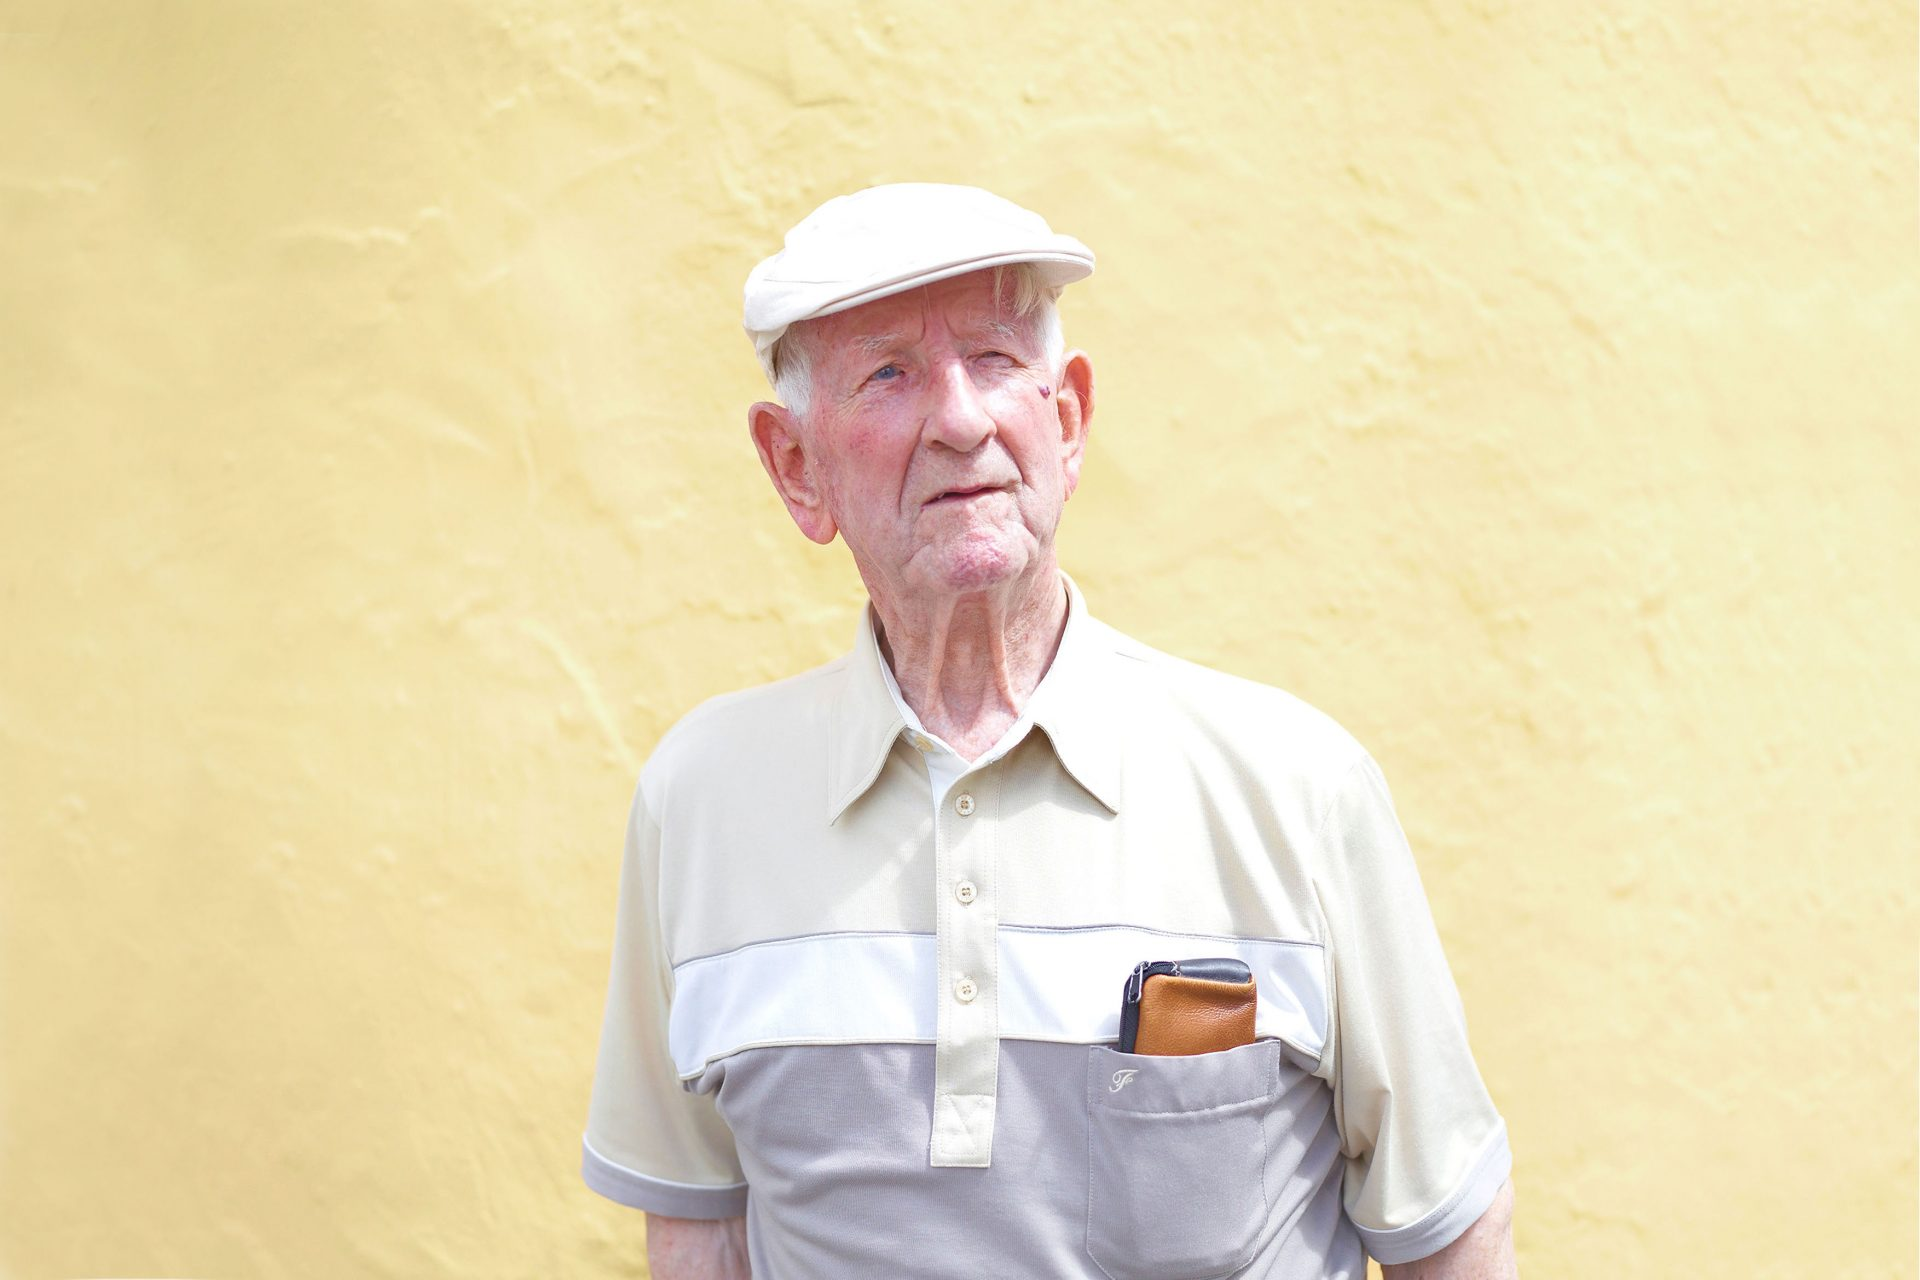 old man with a  wallet in his breast pocket yellow wall day tripper – Shaw and Shaw Advertising photographers Manchester photographer – Shaw & Shaw Photography